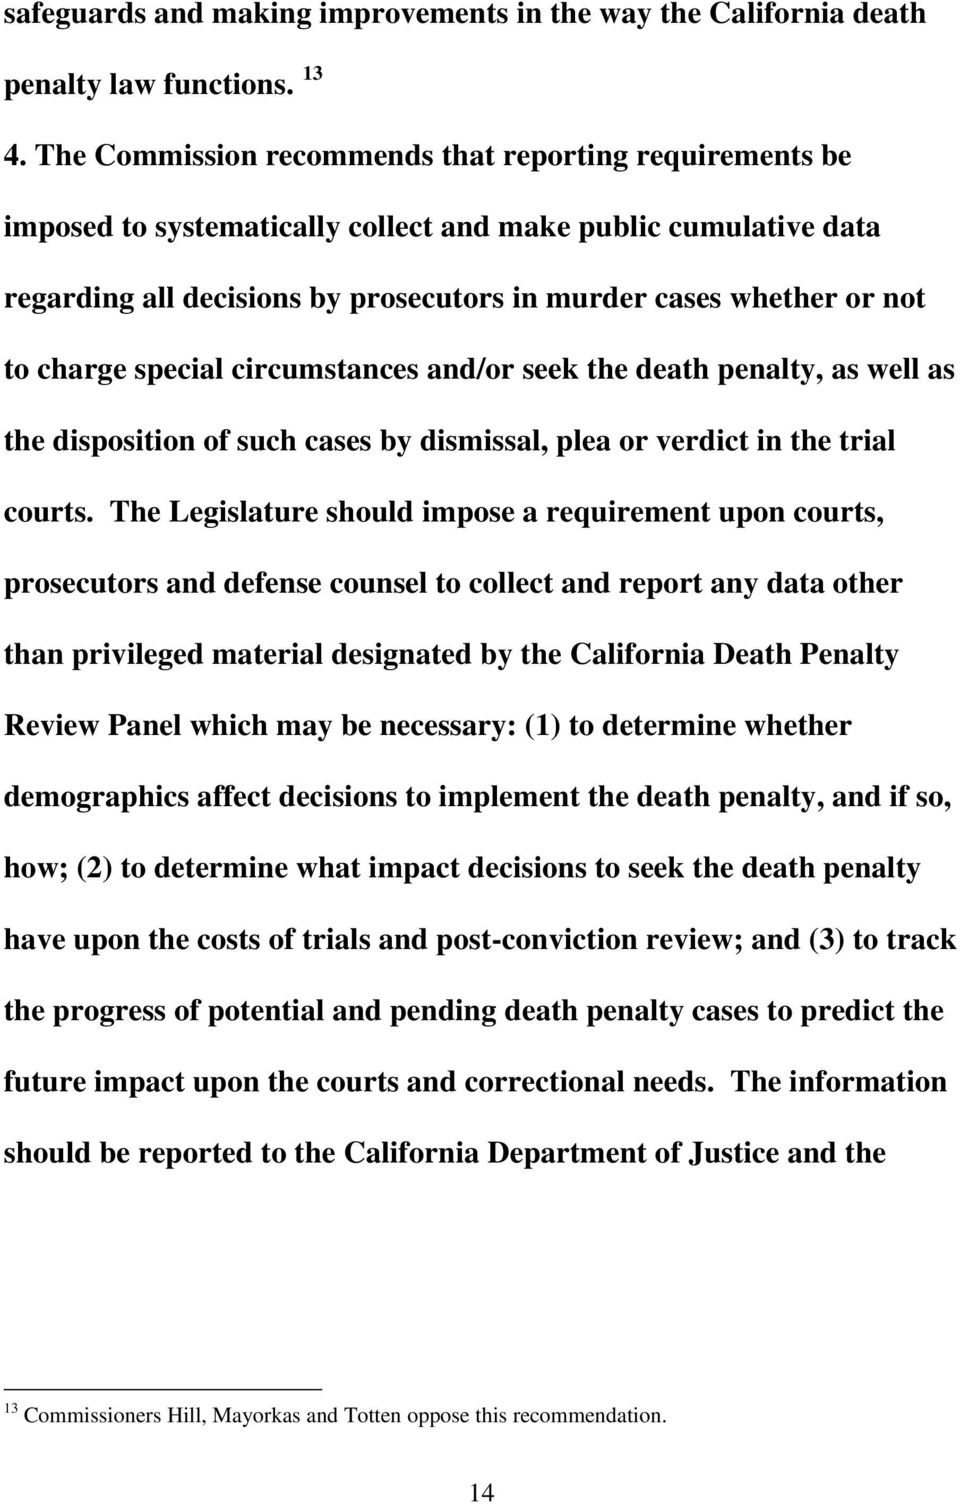 charge special circumstances and/or seek the death penalty, as well as the disposition of such cases by dismissal, plea or verdict in the trial courts.